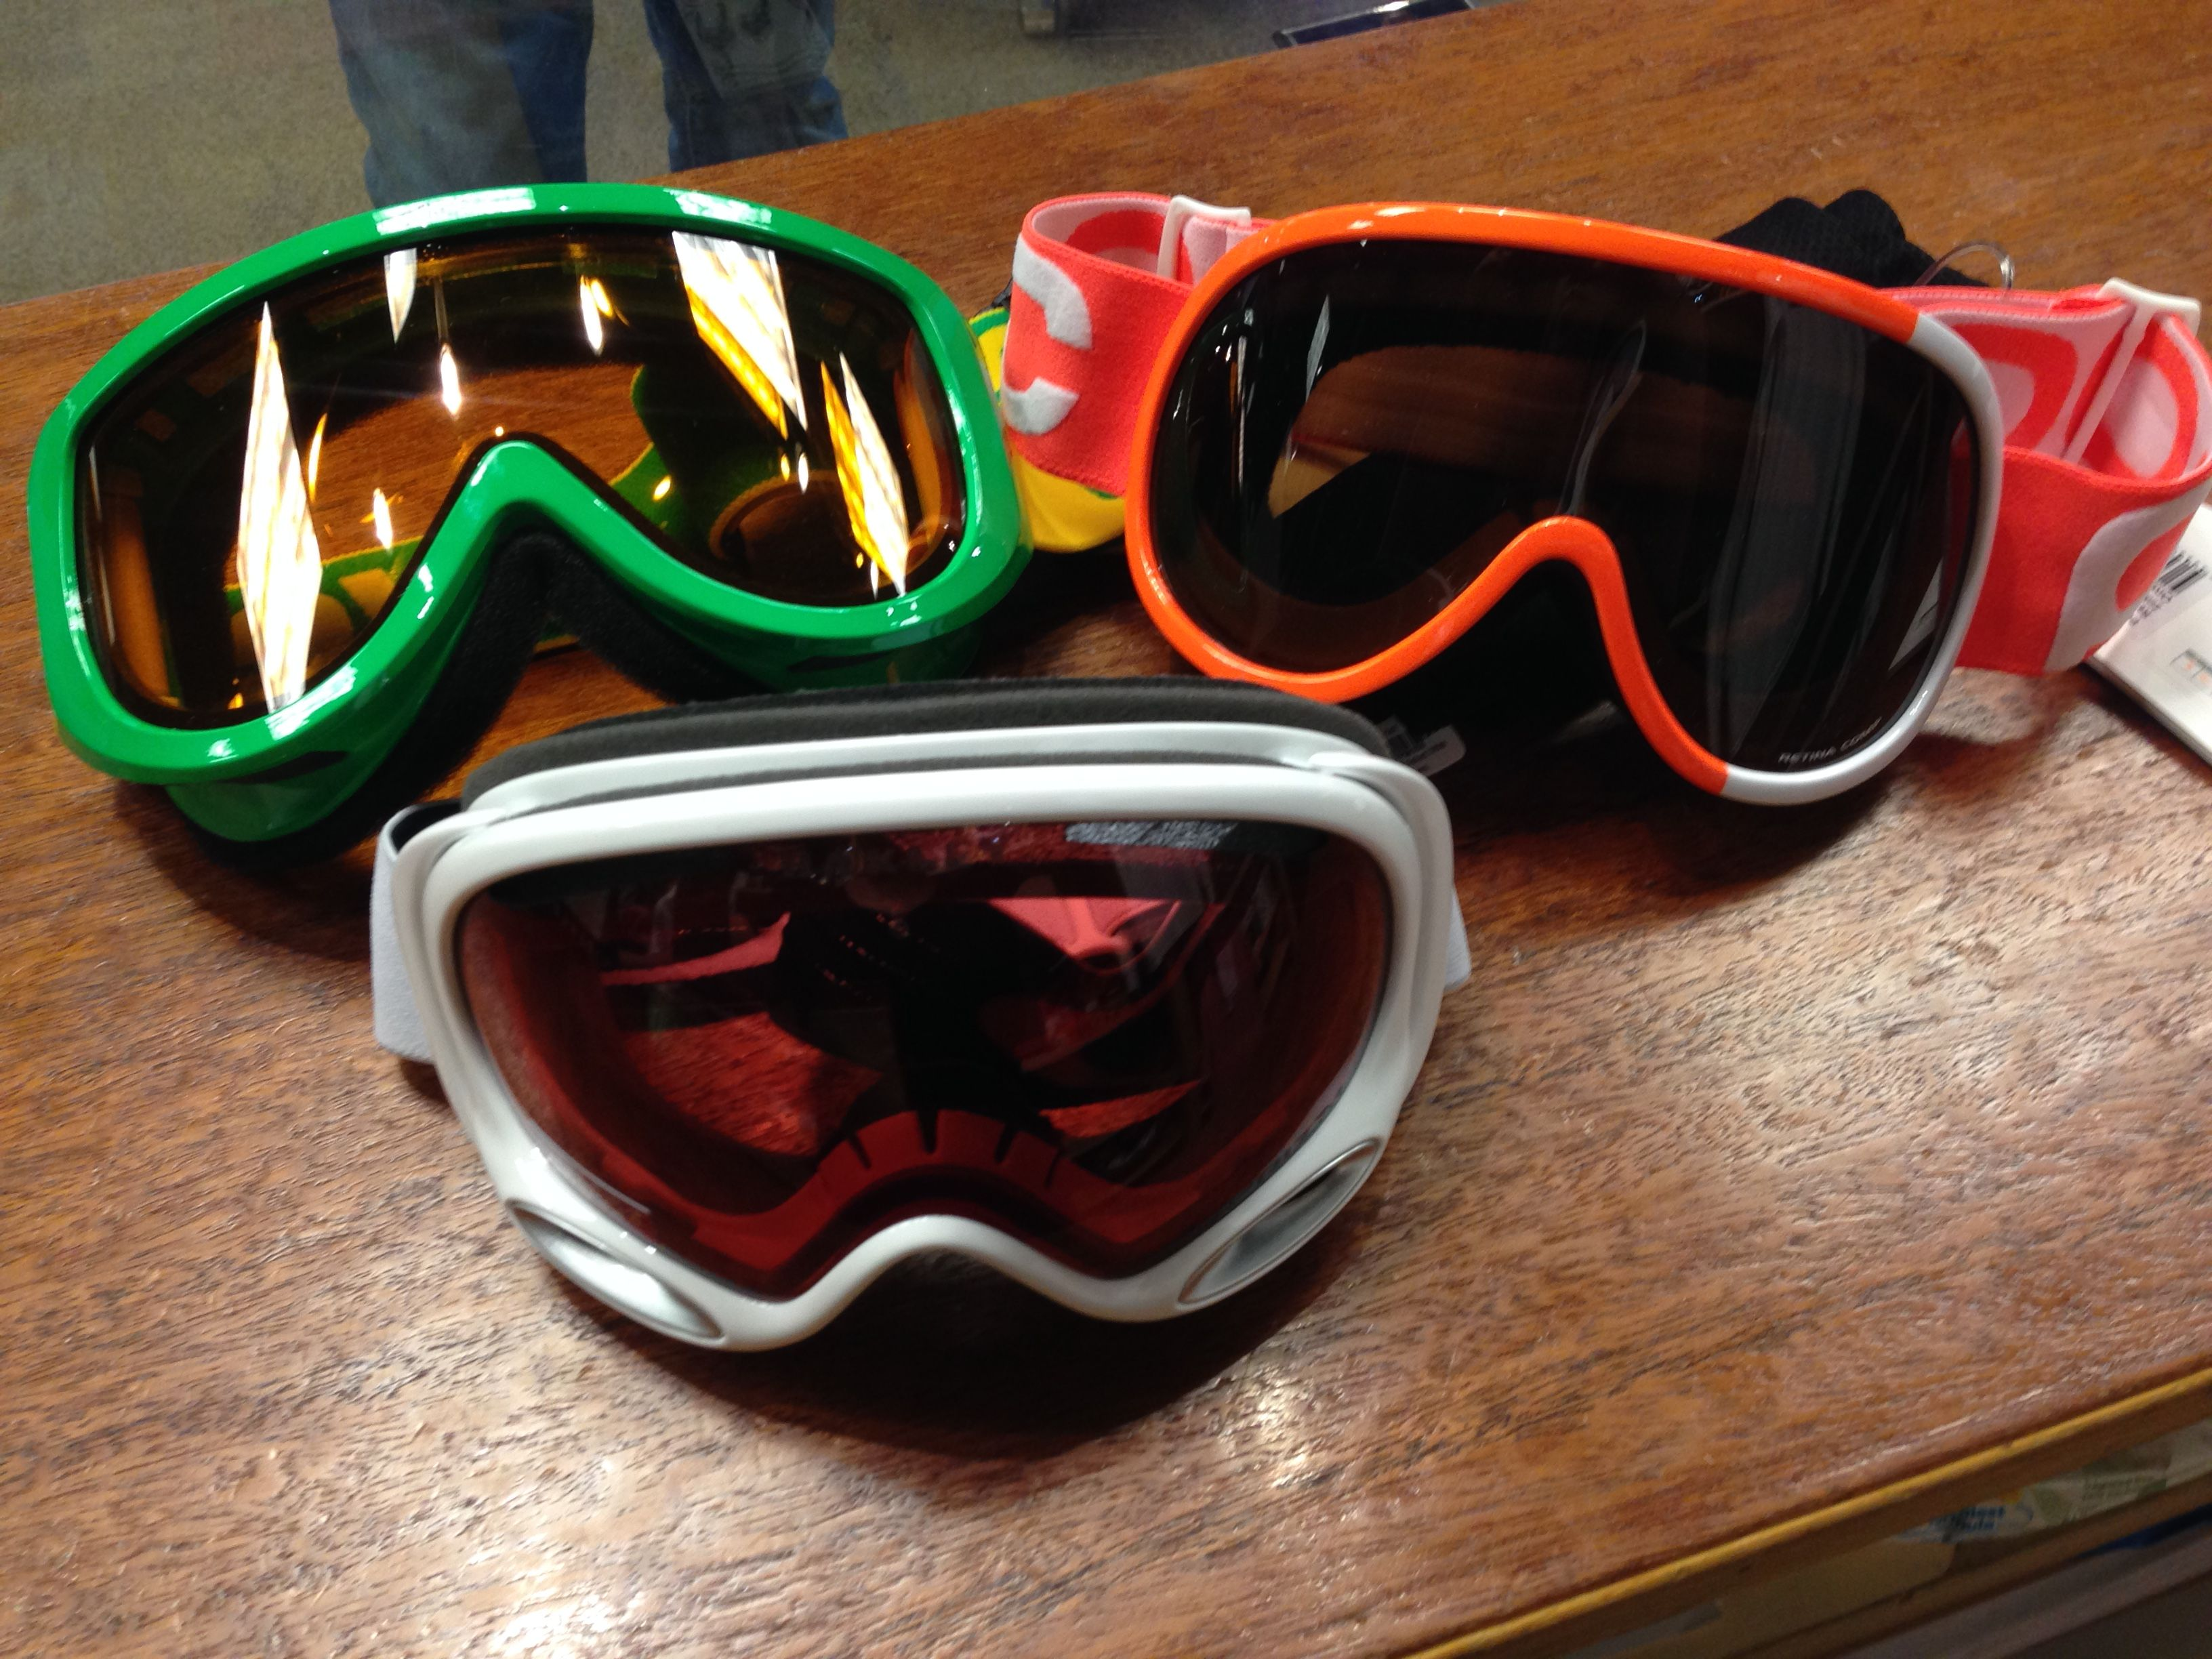 oakley goggles sale  Goggles on sale too! #poc #uvex #oakley